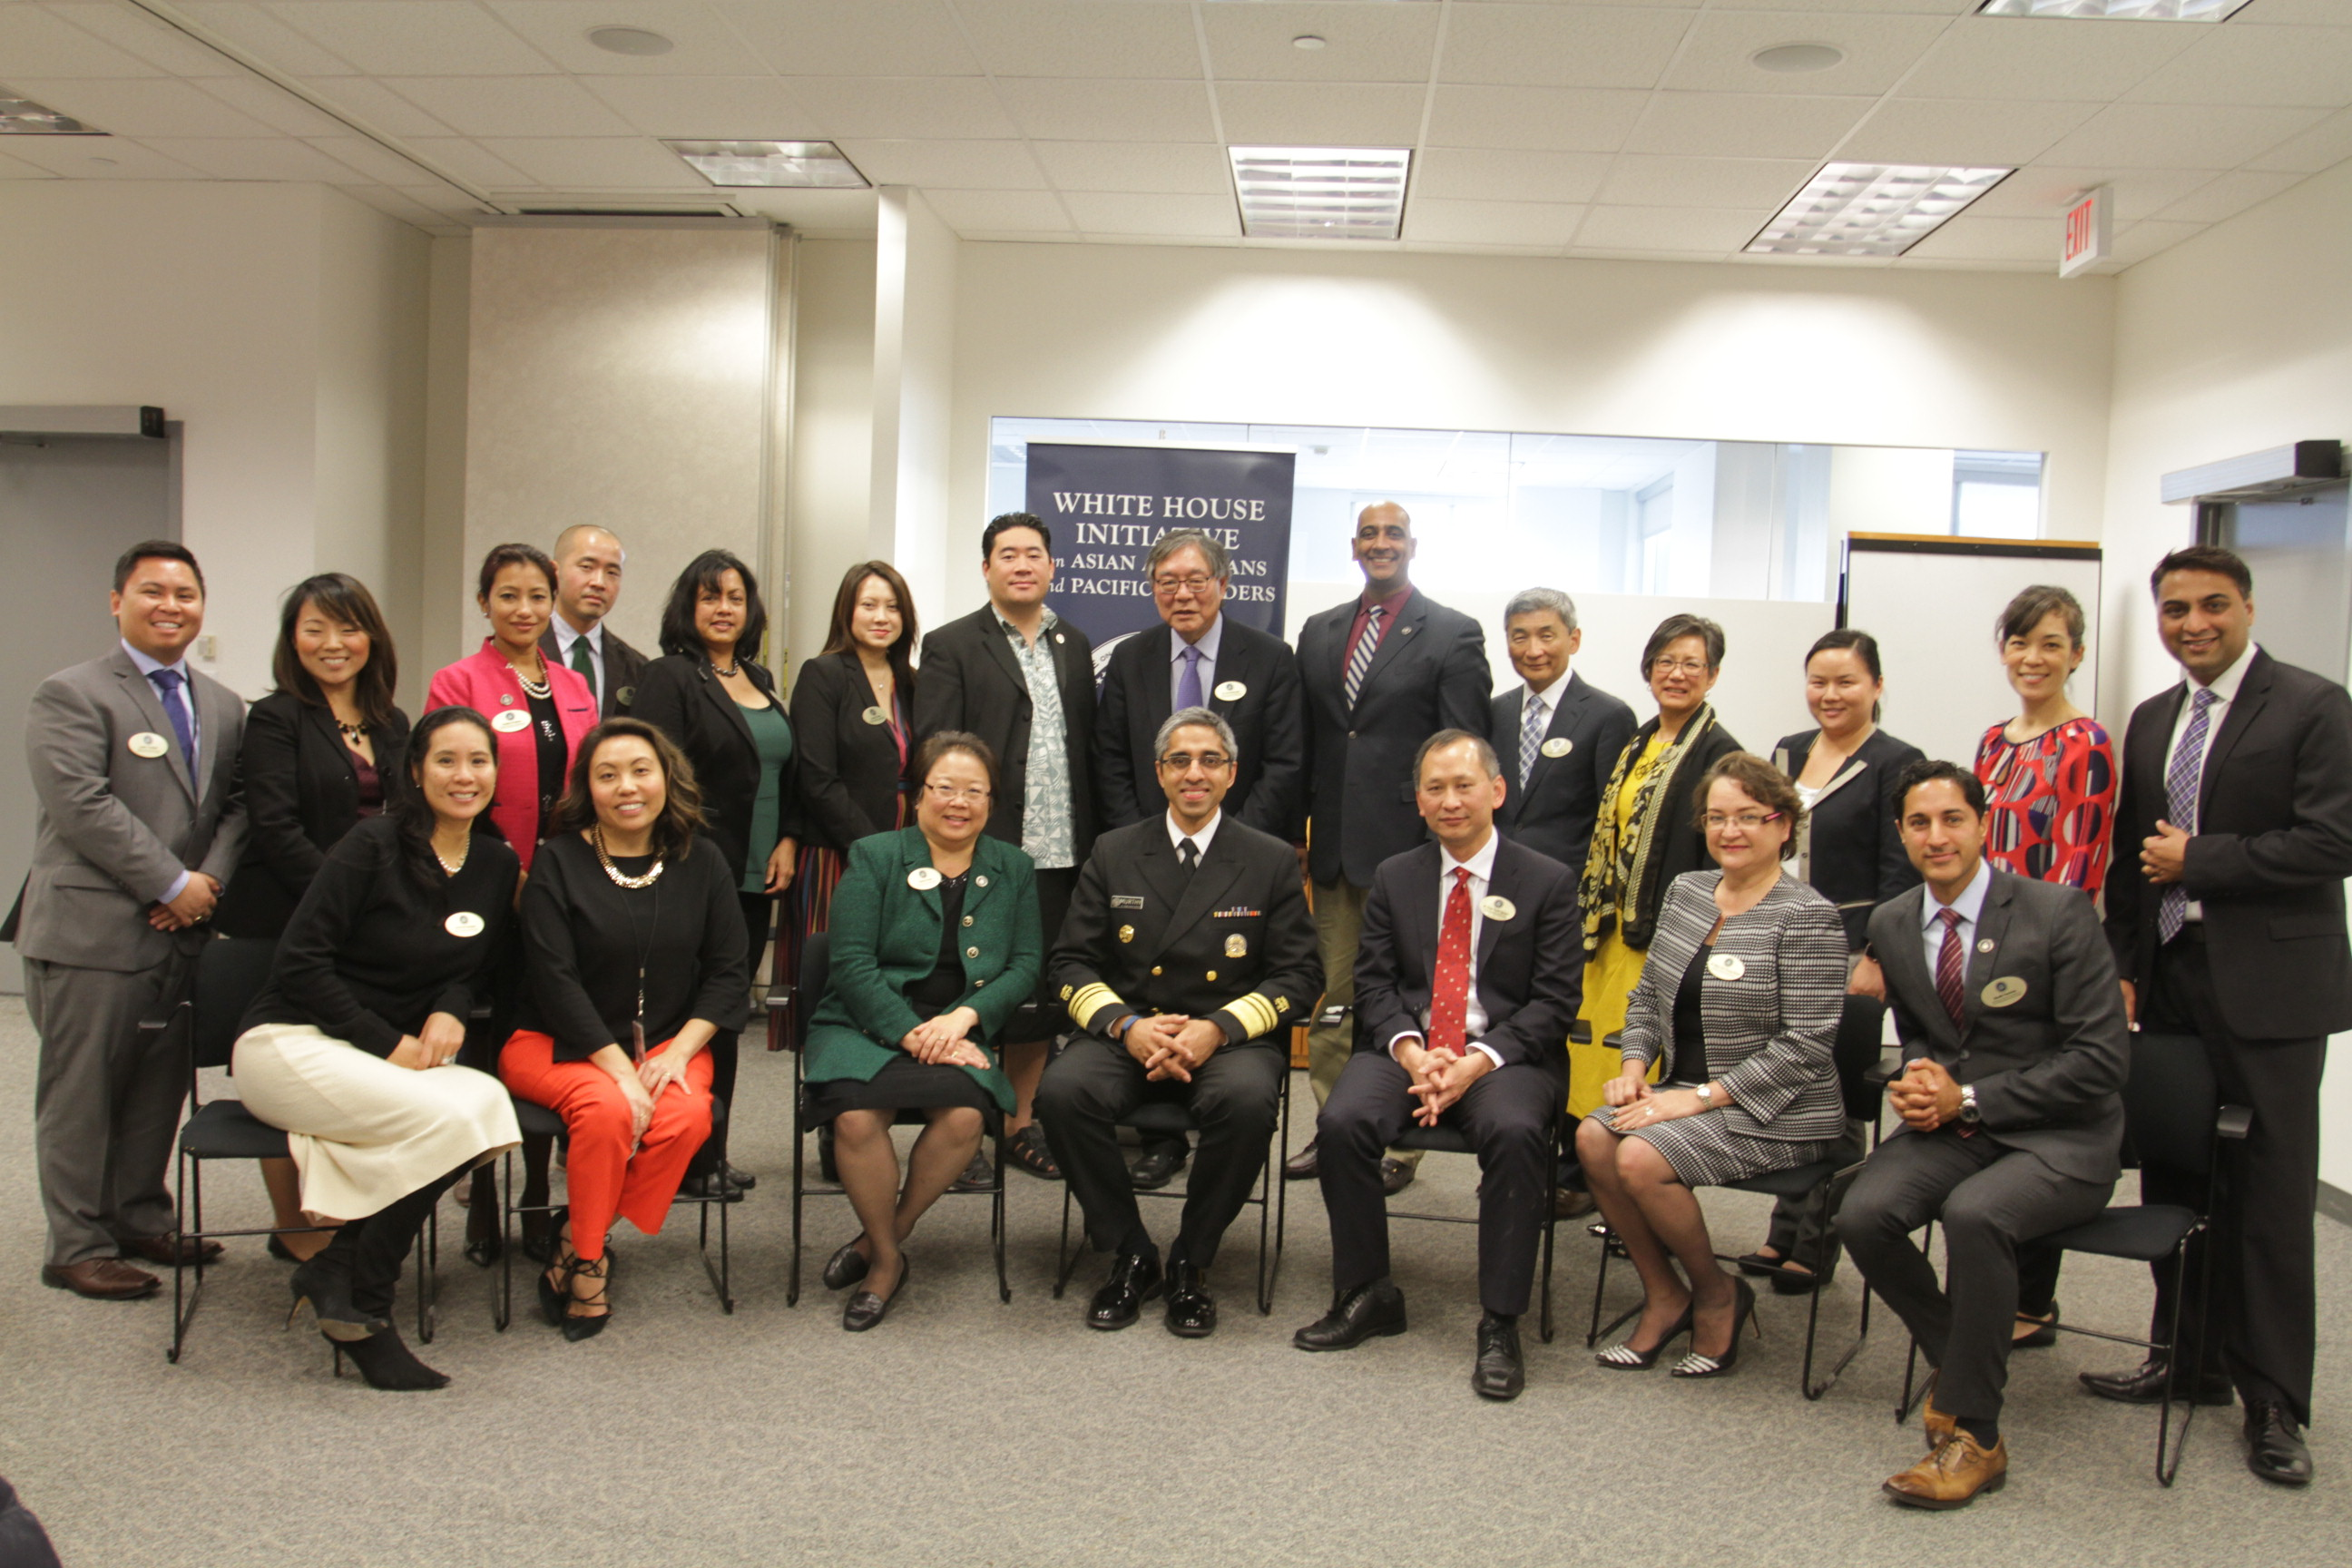 White house initiative AAPI